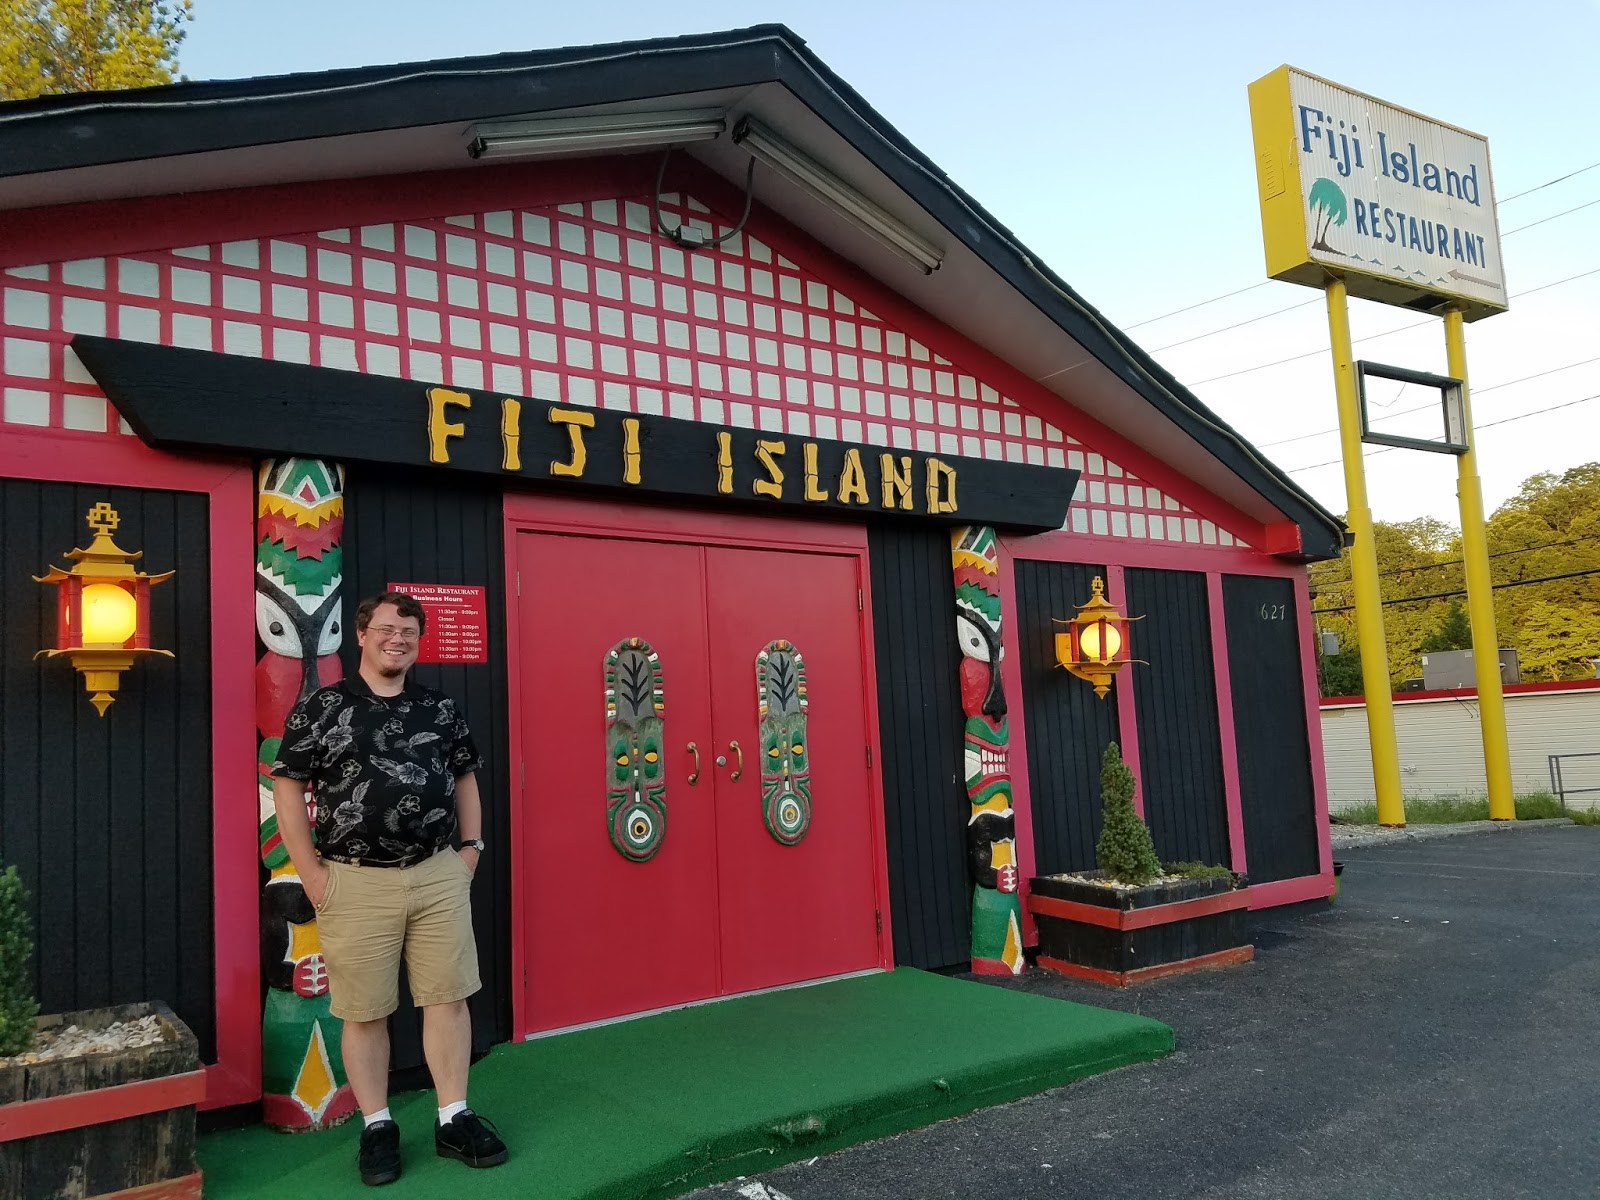 In College K Visited The Roanoke Va Fiji Island Restaurant With Friends She Had A Great Time But For Wver Reason Not Returned